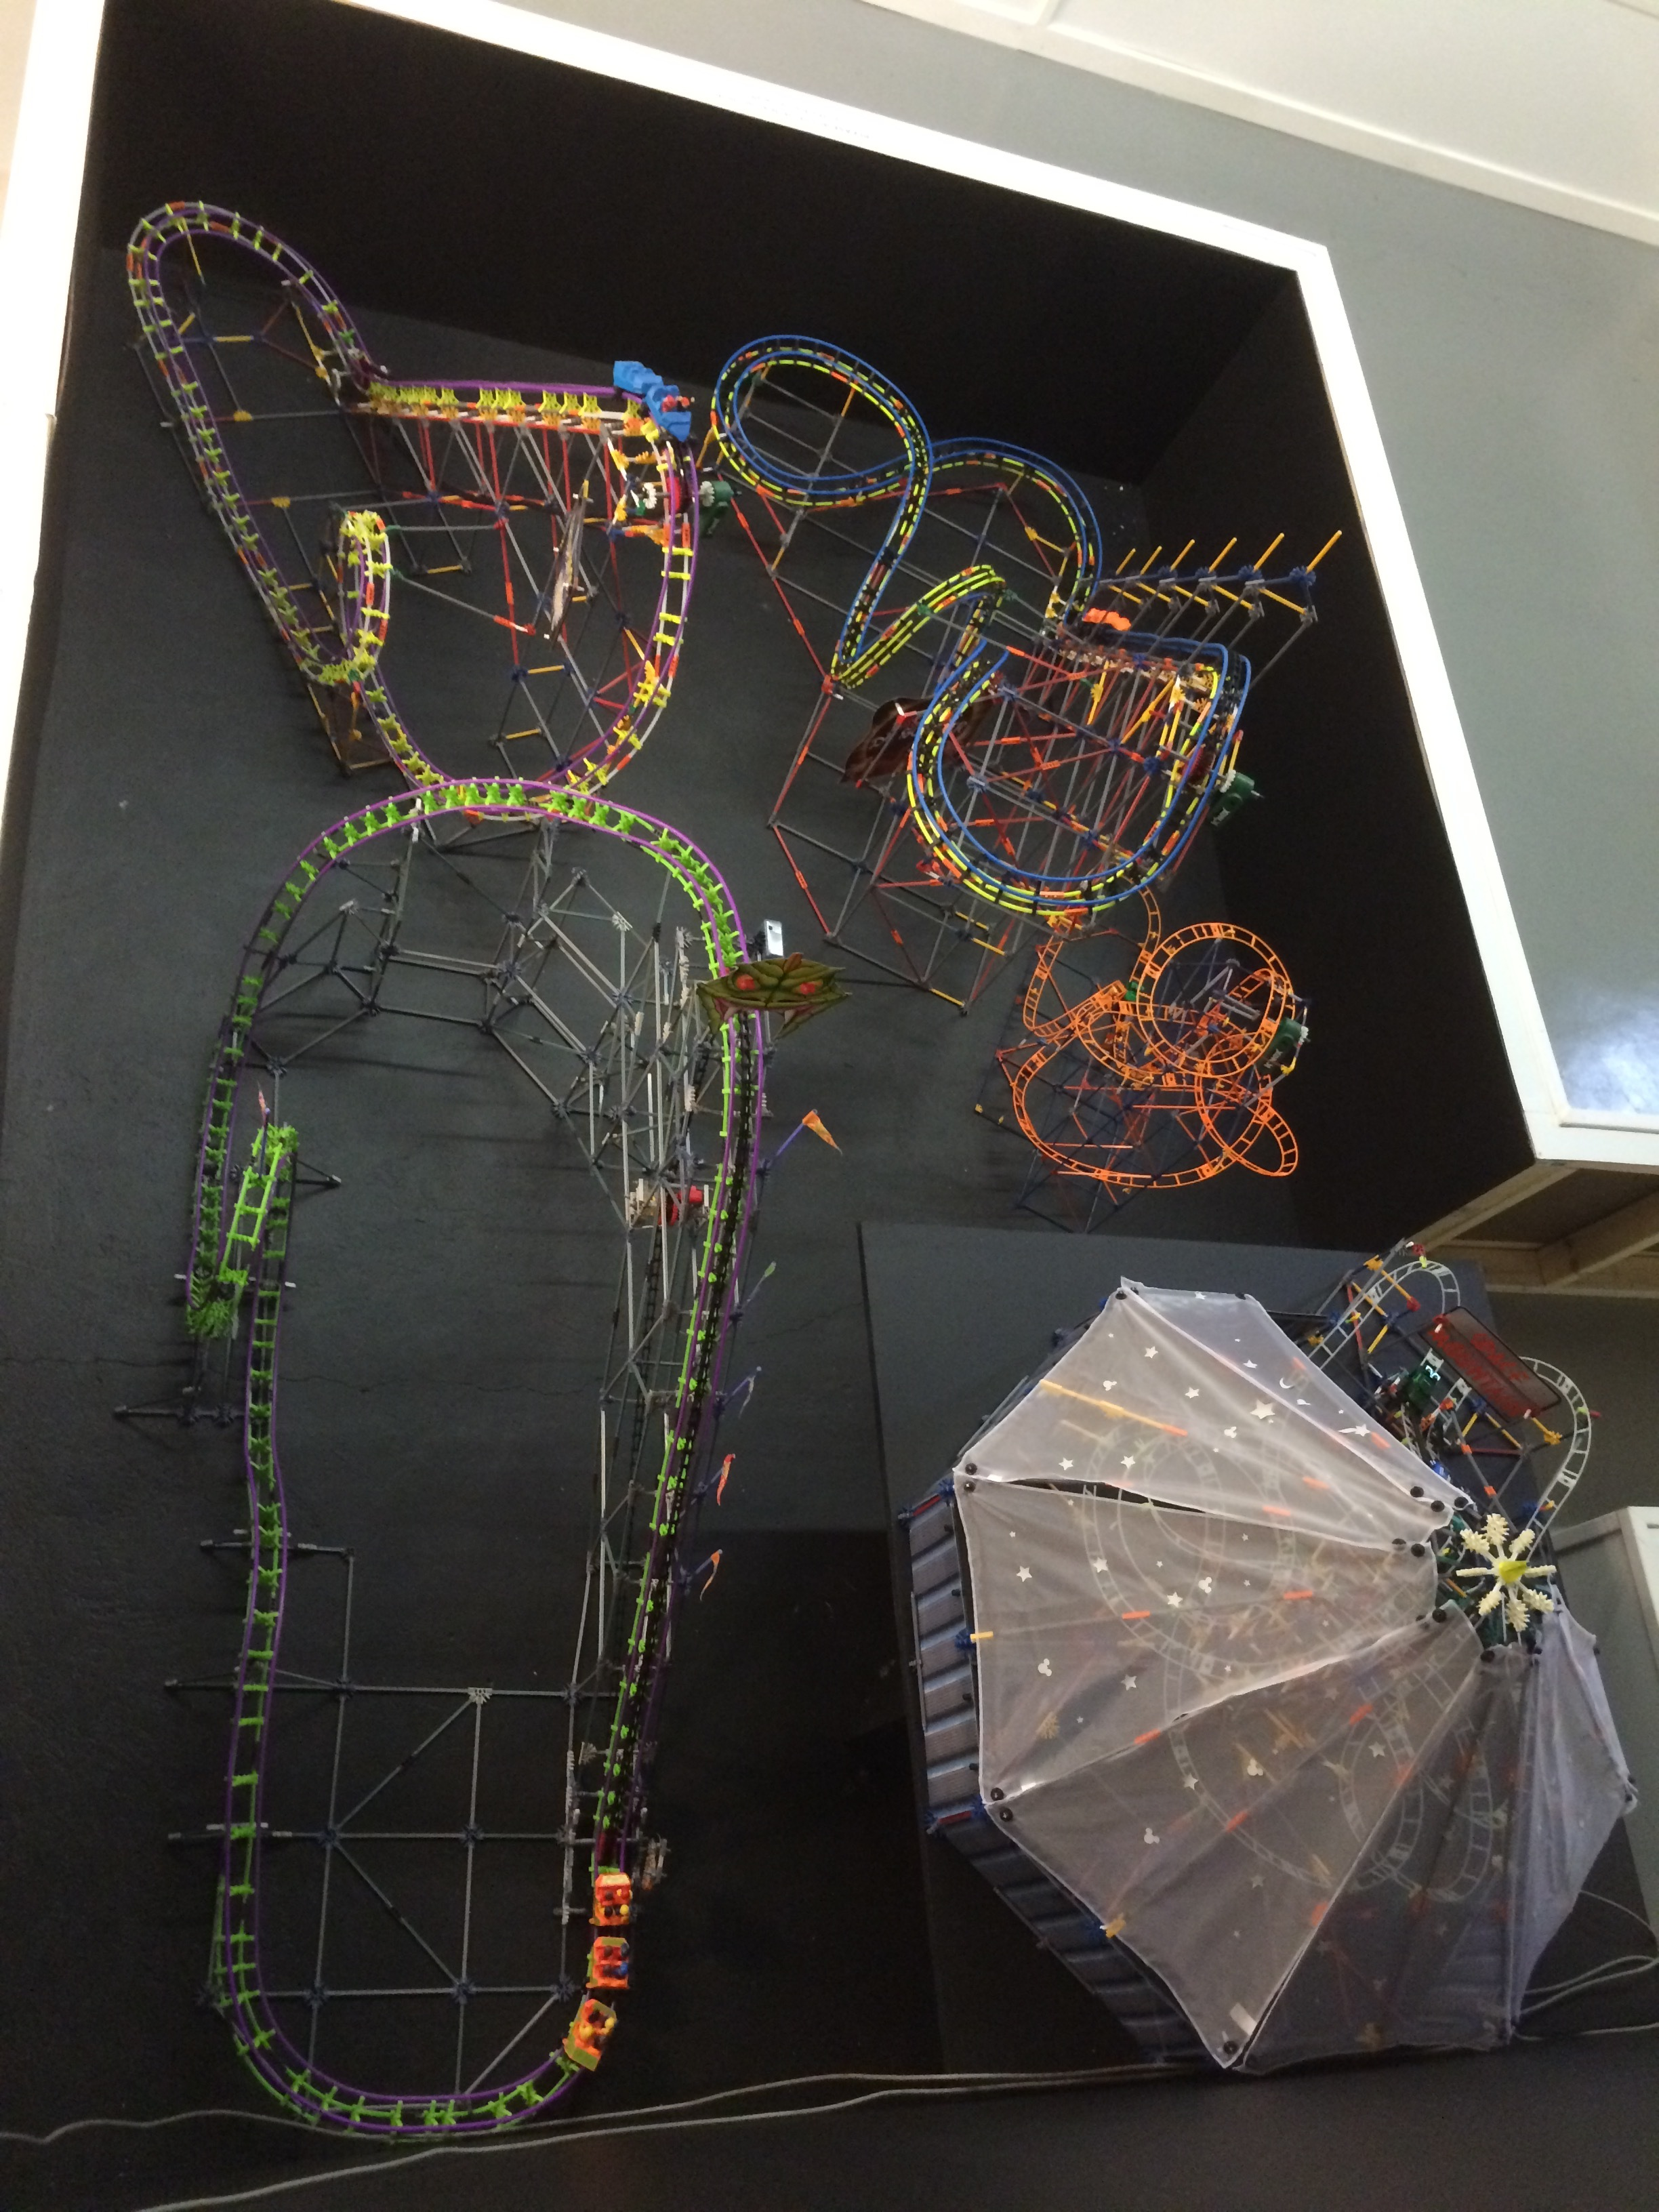 Exhibit: Playtime: Roller Coaster Toy Gallery - K'nex Roller Coasters